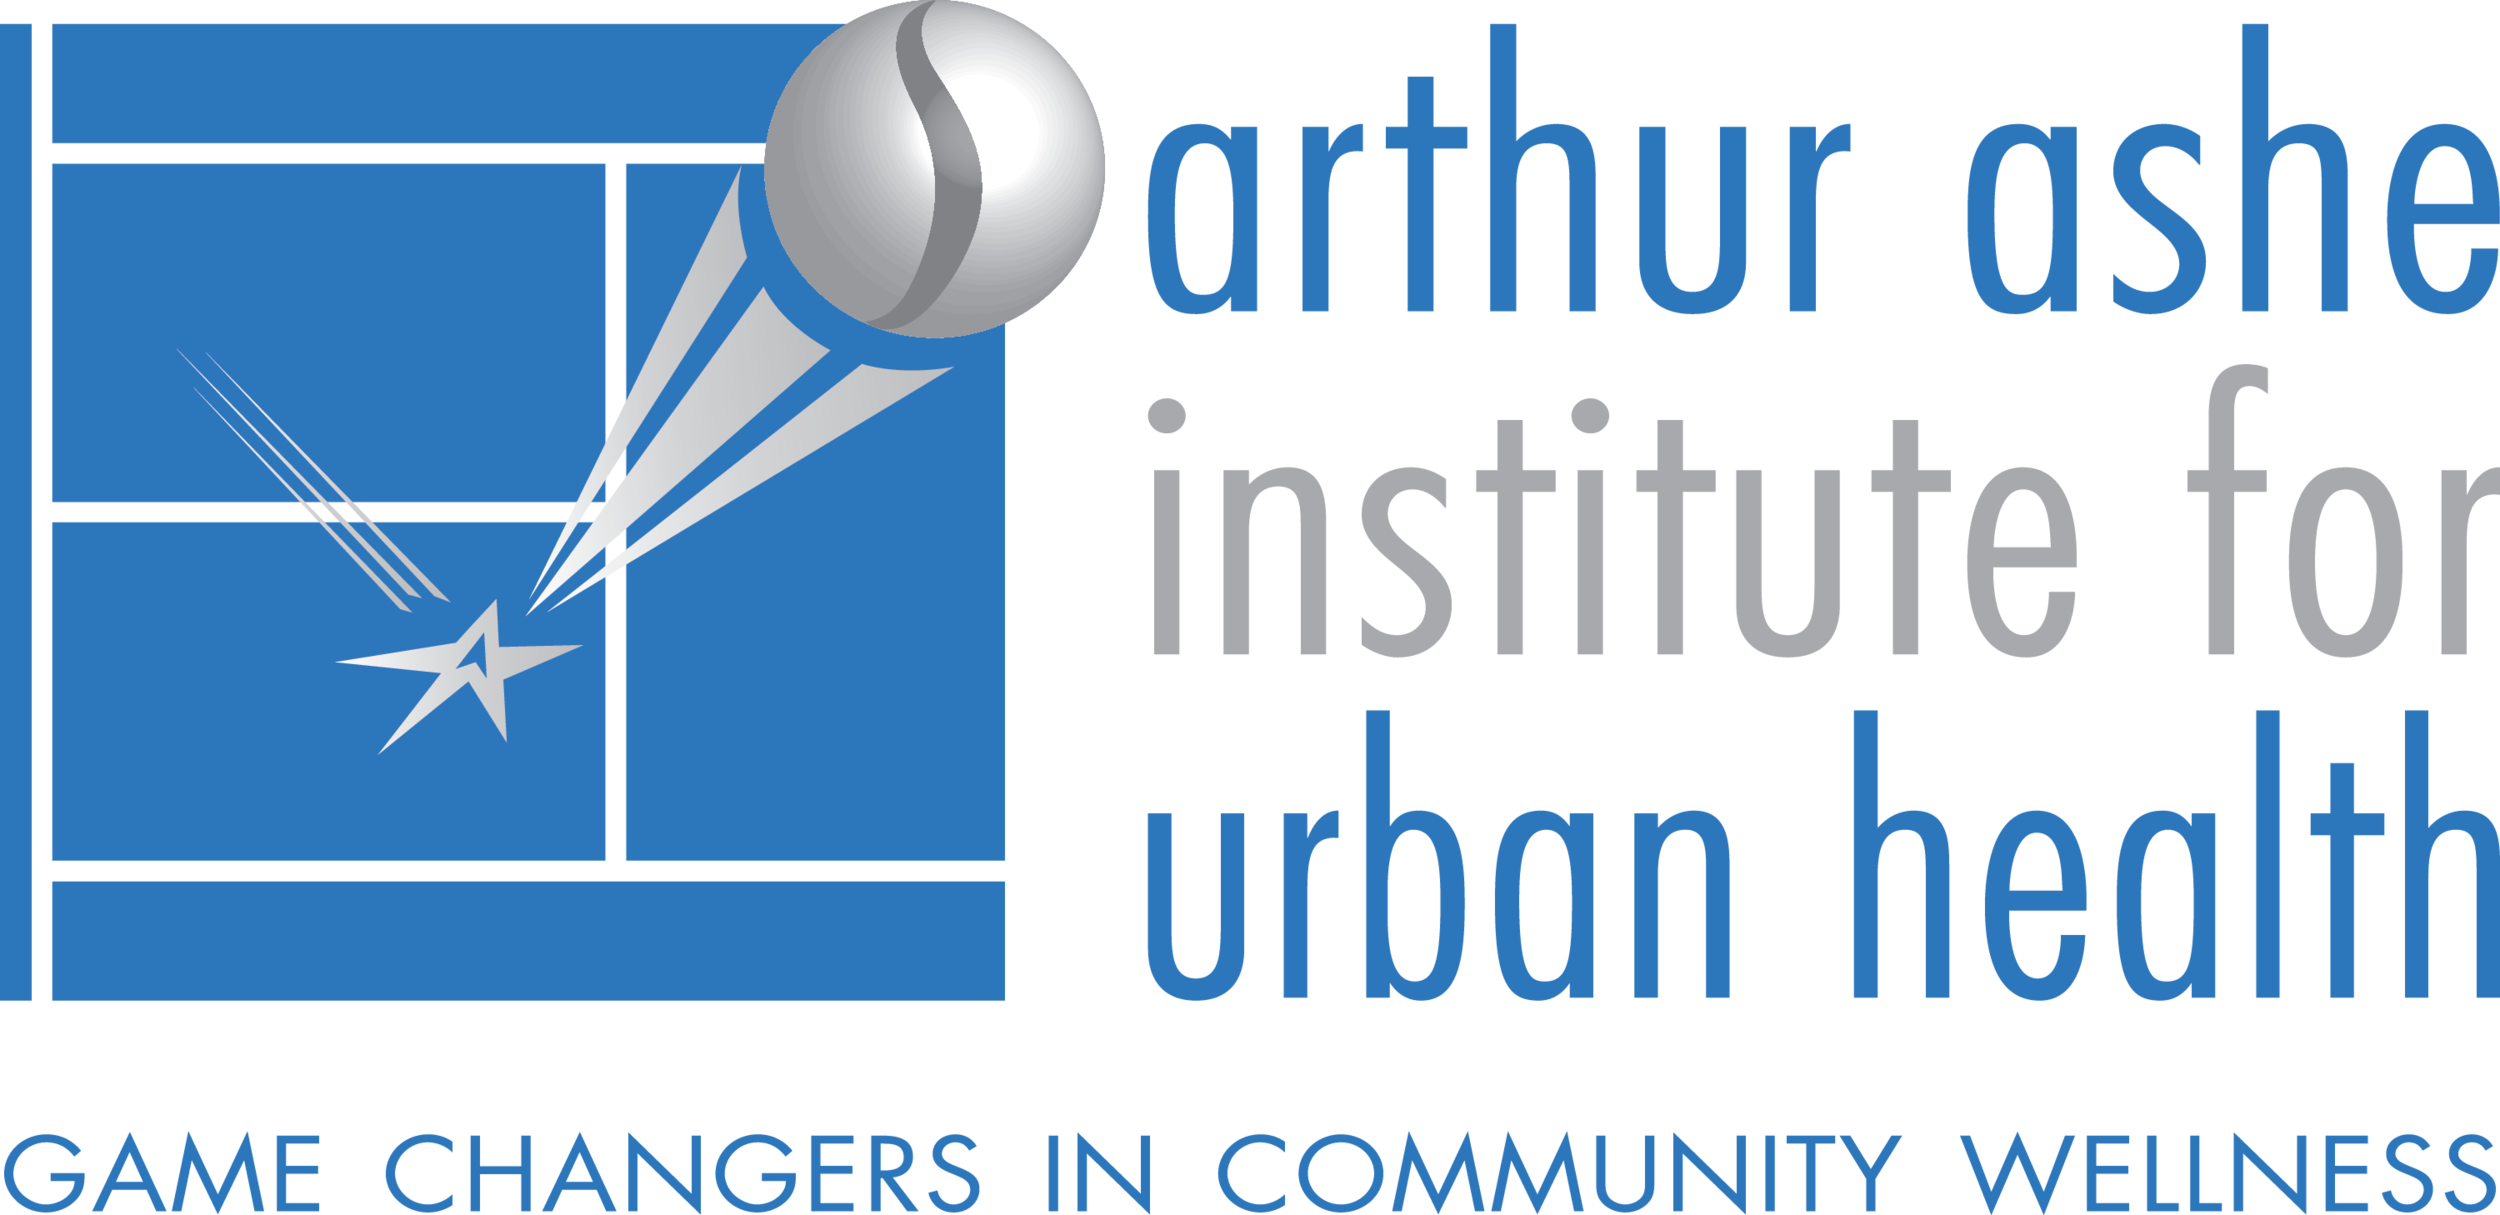 Arthur Ashe Institue for Urban Health